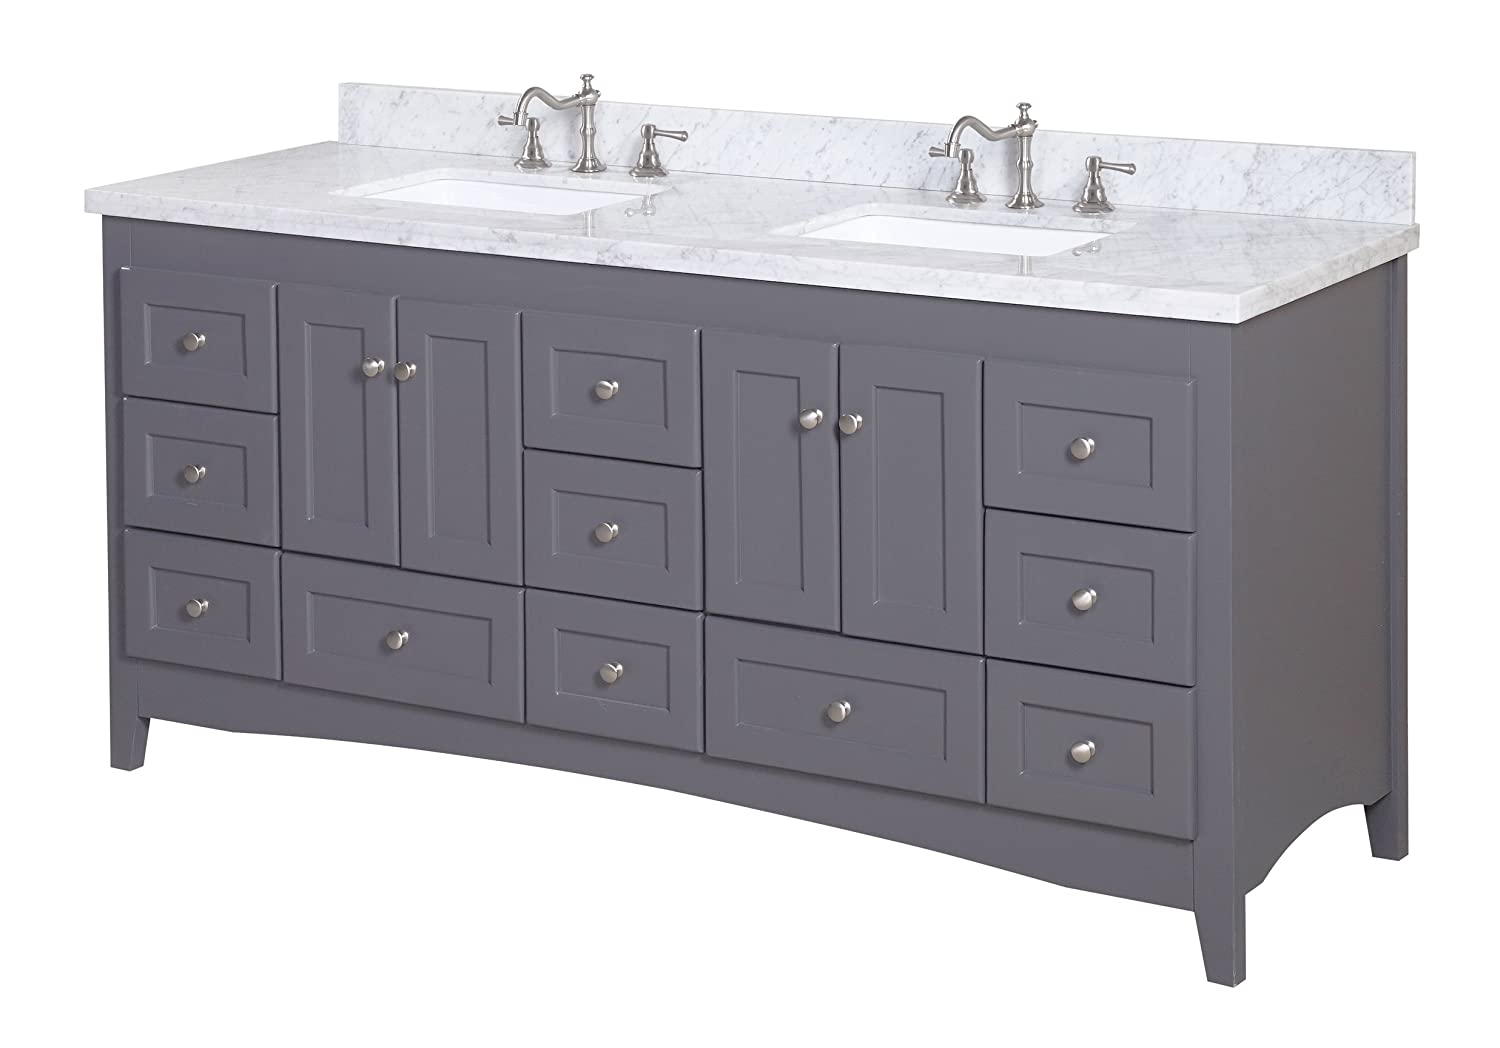 Kitchen Bath Collection KBC3872GYCARR Abbey Bathroom Vanity With Marble  Countertop, Cabinet With Soft Close Function And Undermount Ceramic Sink,  ...